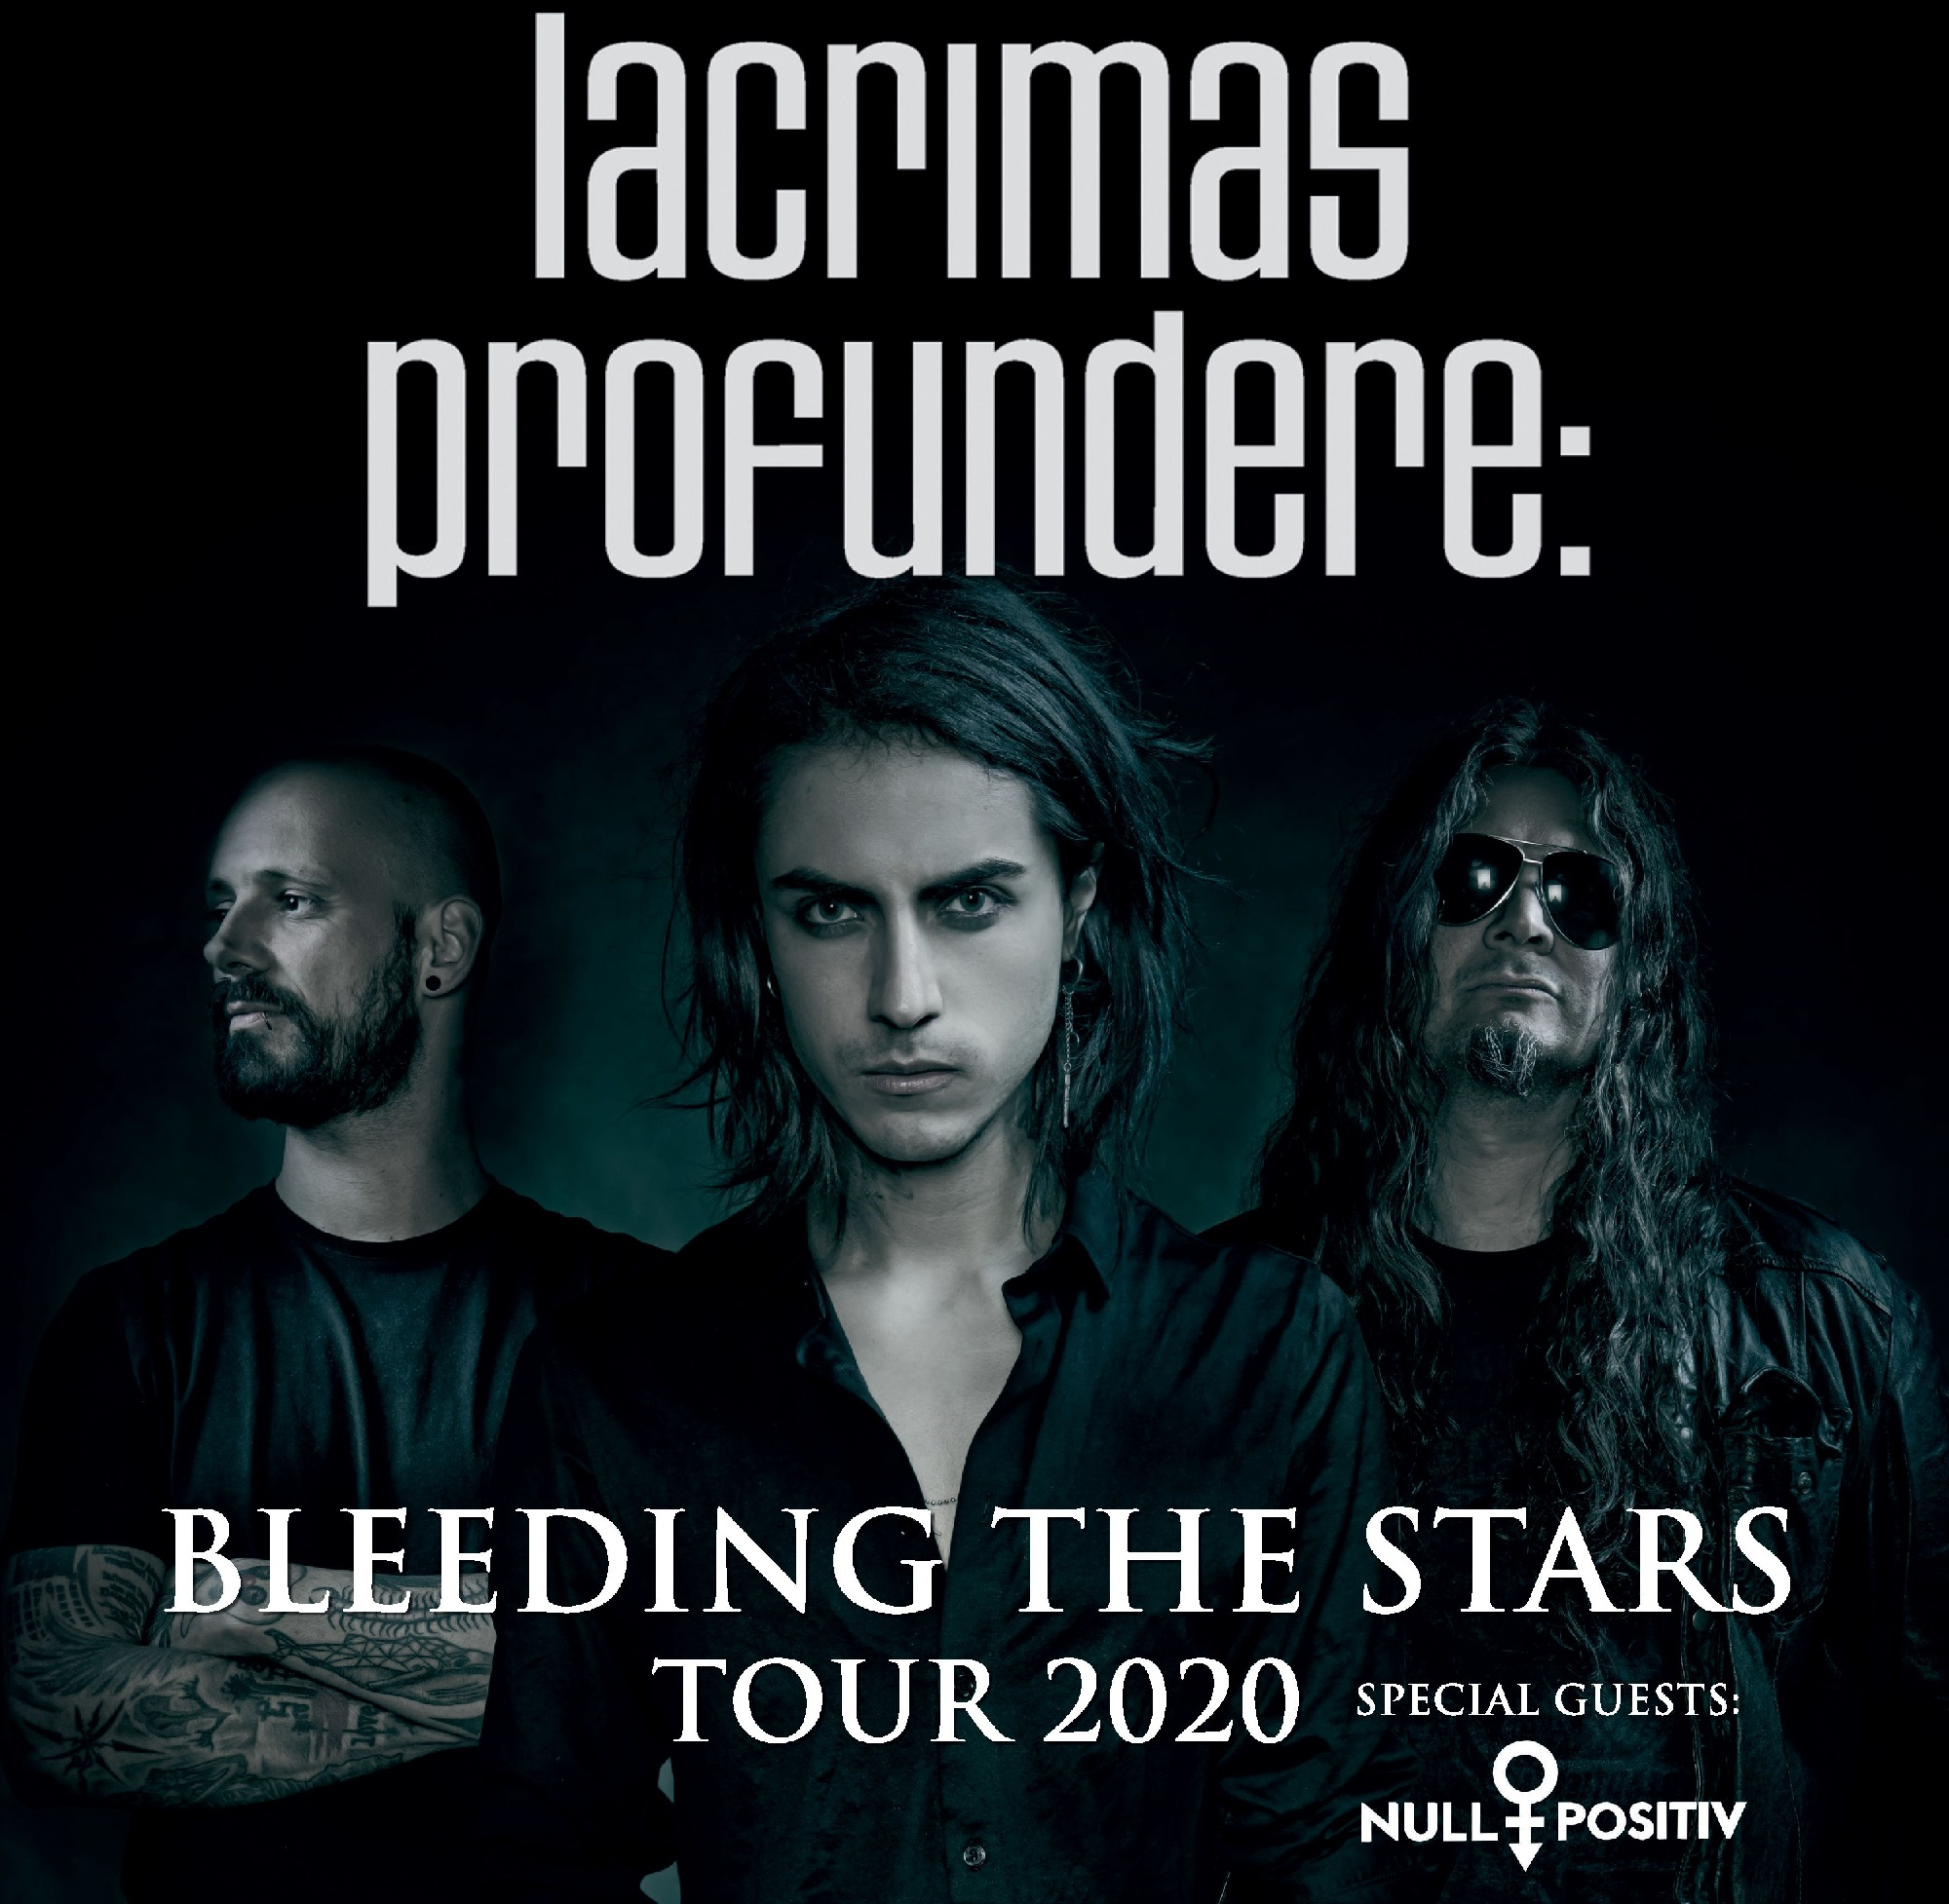 lacrimas bleeding stars tour 2020 homepage